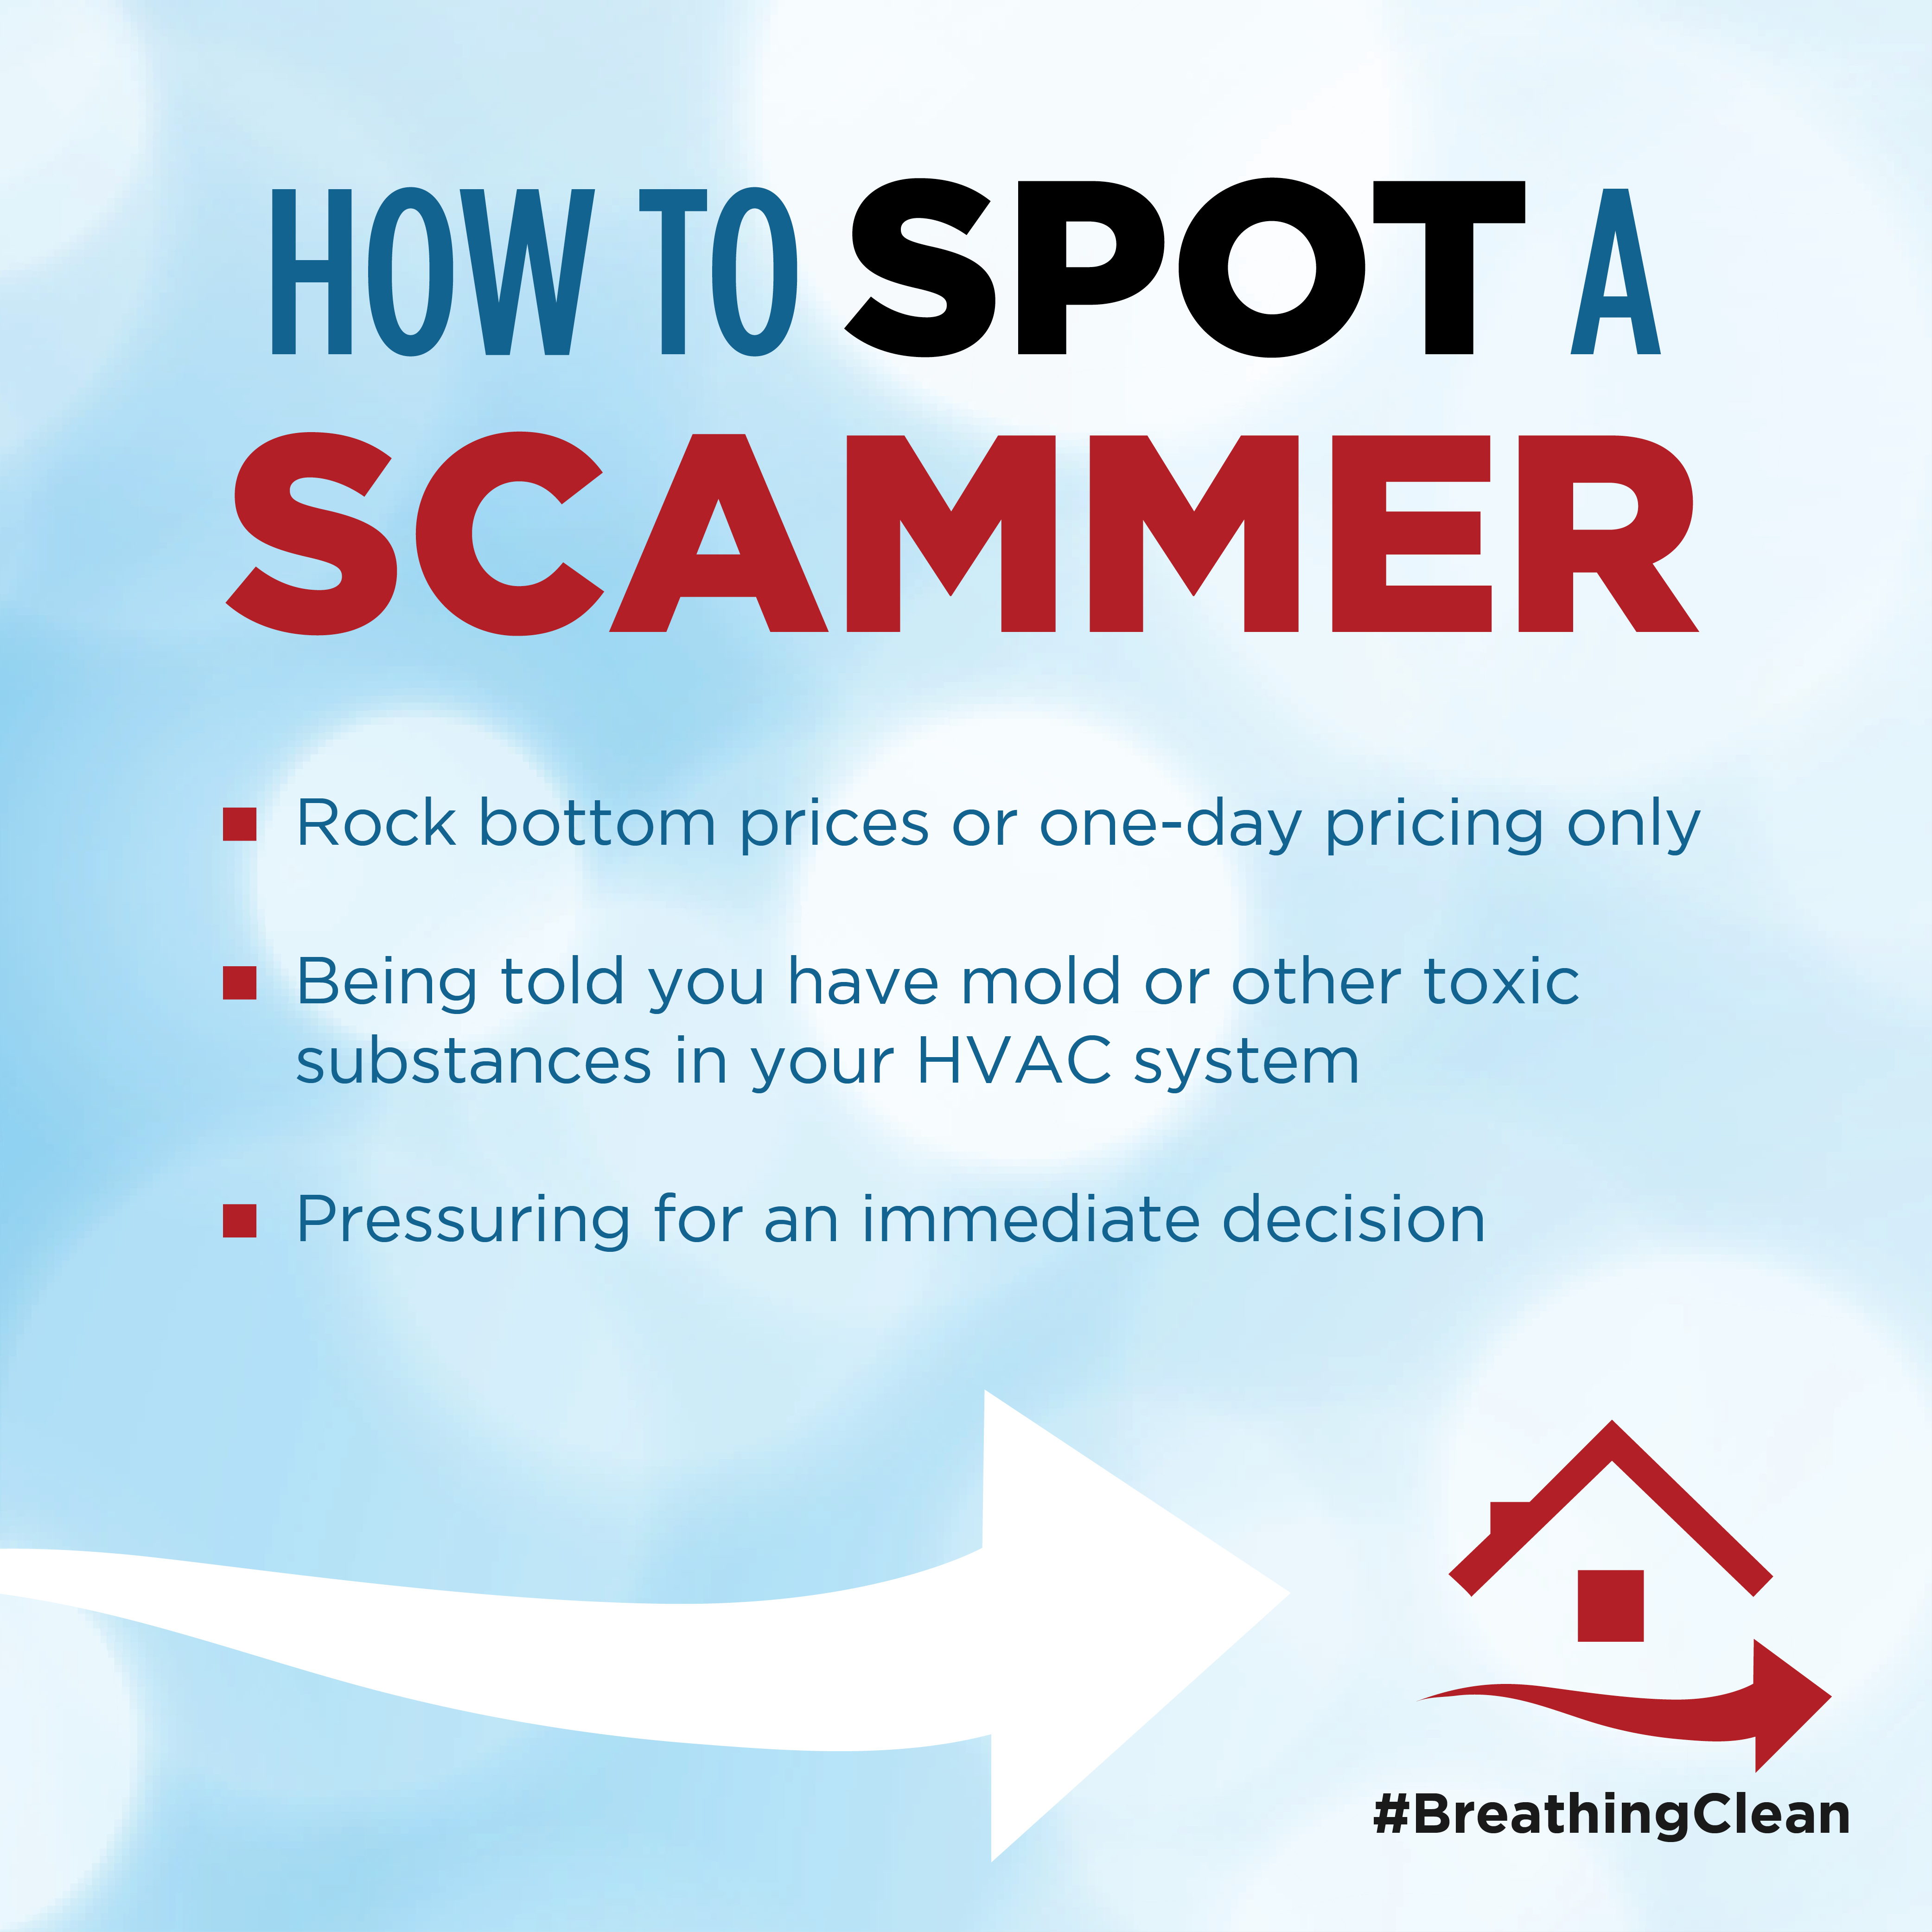 How to spot a scammer